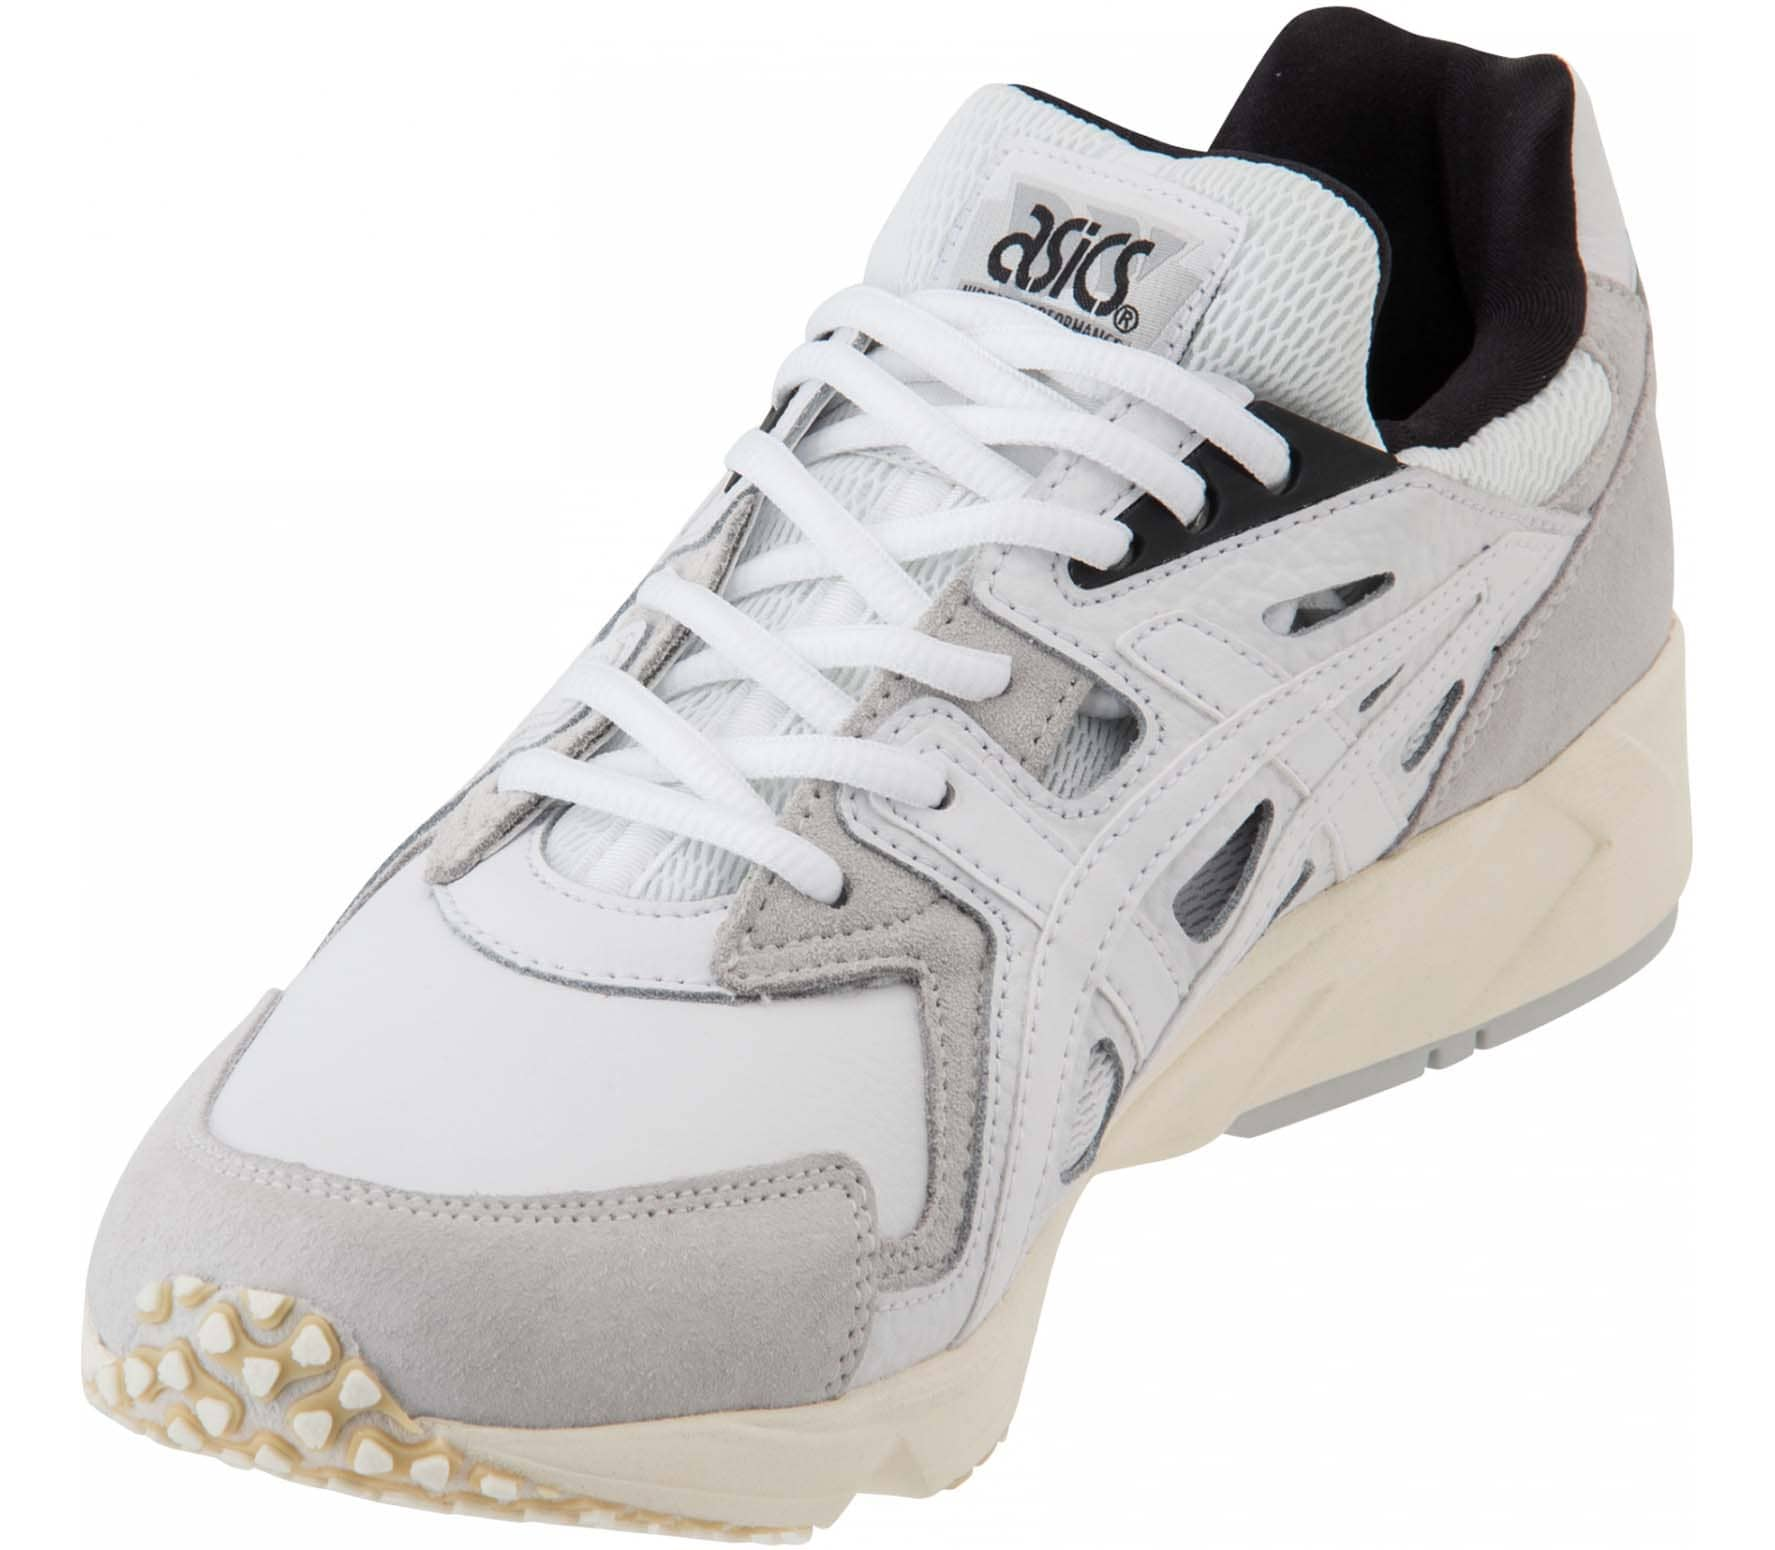 super popular 0ad71 ddc7c ASICS Gel-DS Trainer OG Unisex Sneakers white